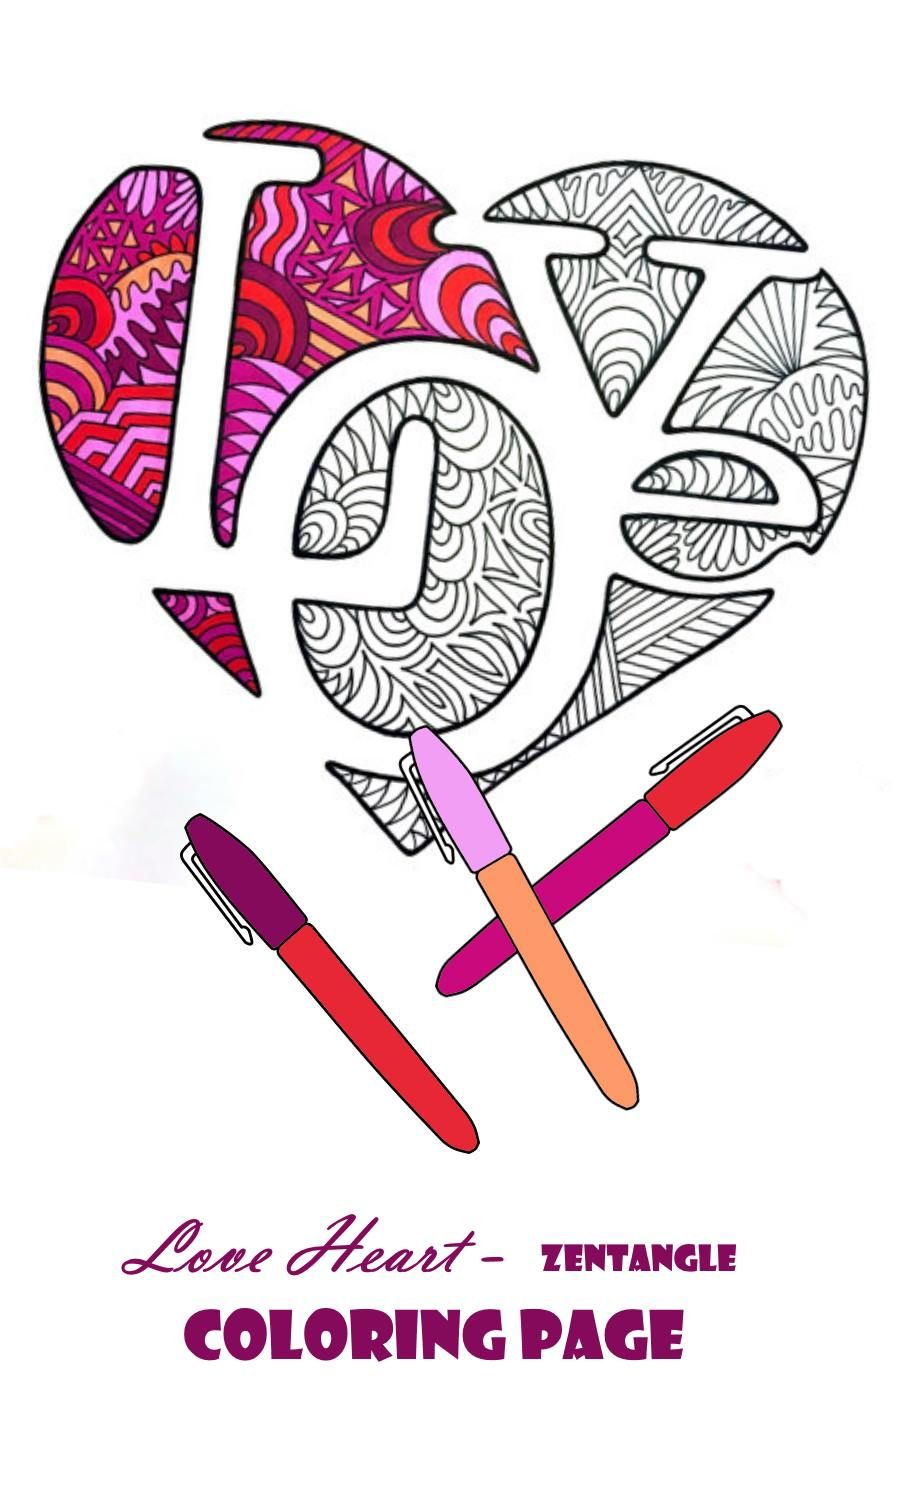 Love Heart - Zentangle Coloring Page... #ad | Coloring ...